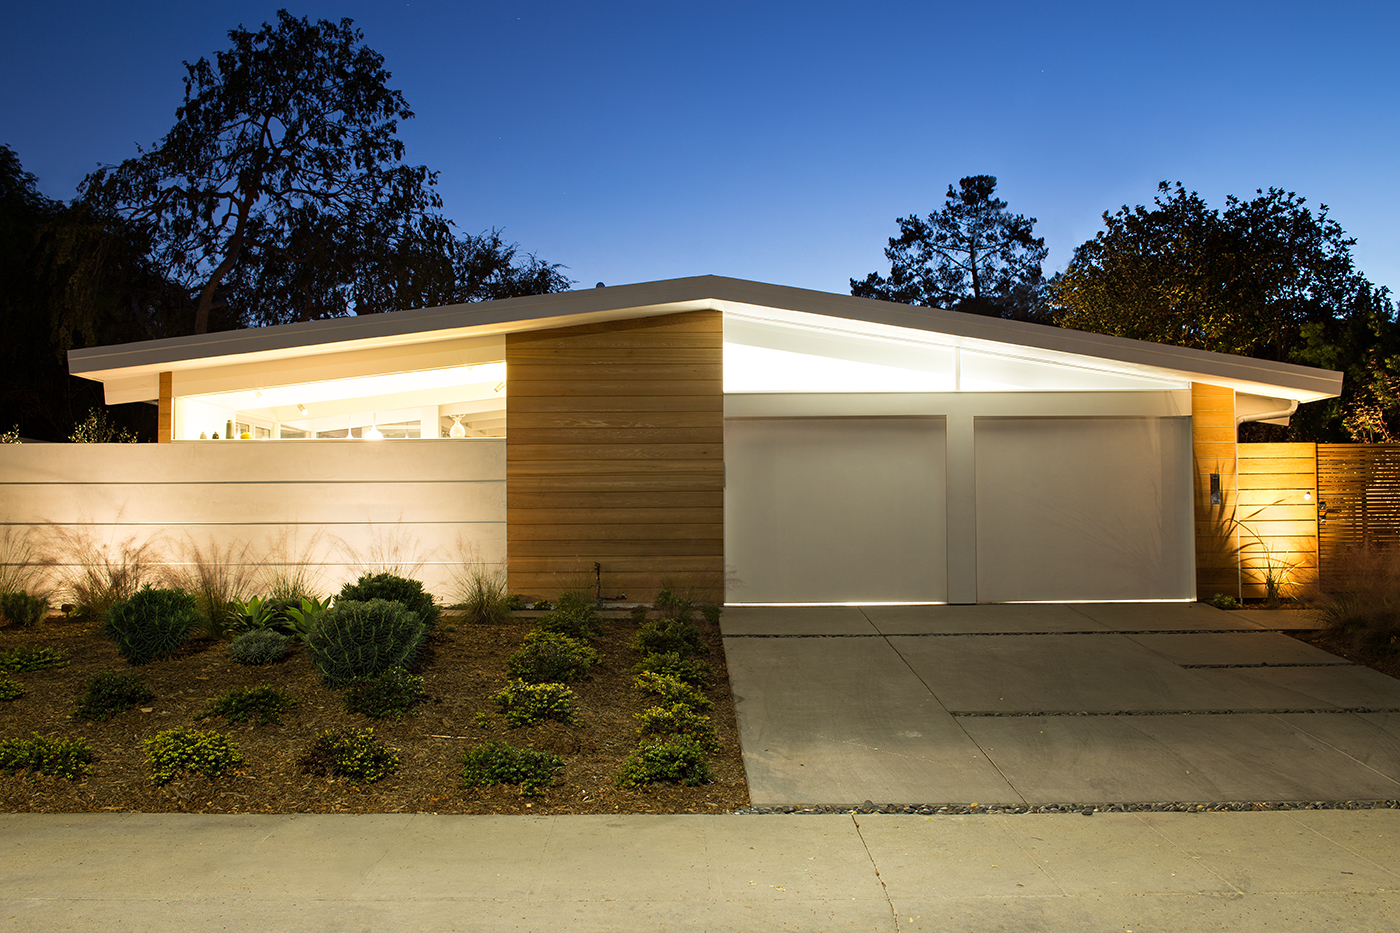 Renovating a wave of midcentury moderns huffpost for Eichler designs